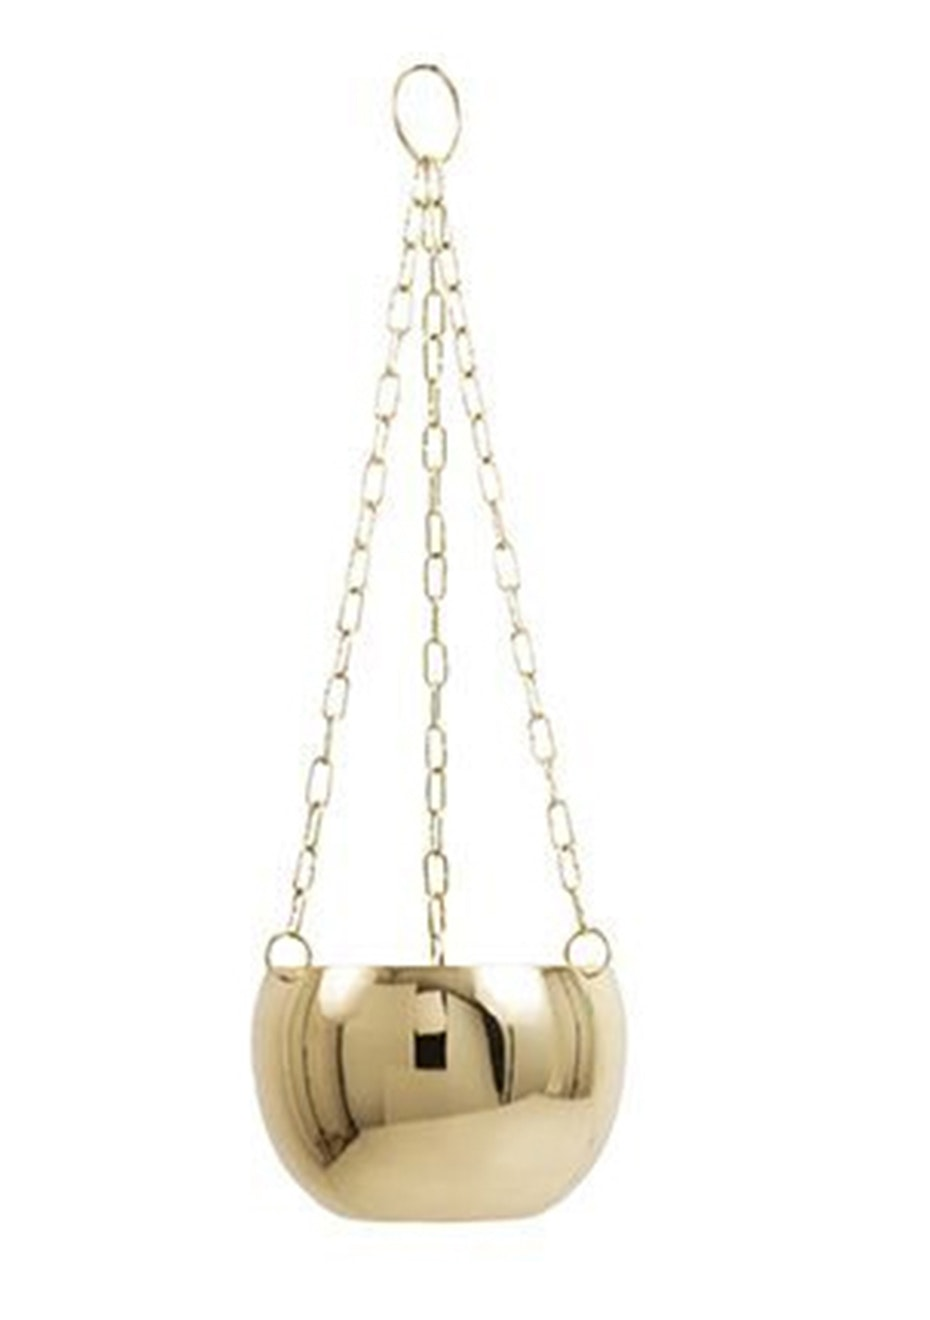 General Eclectic - Hanging Planter Small Brass